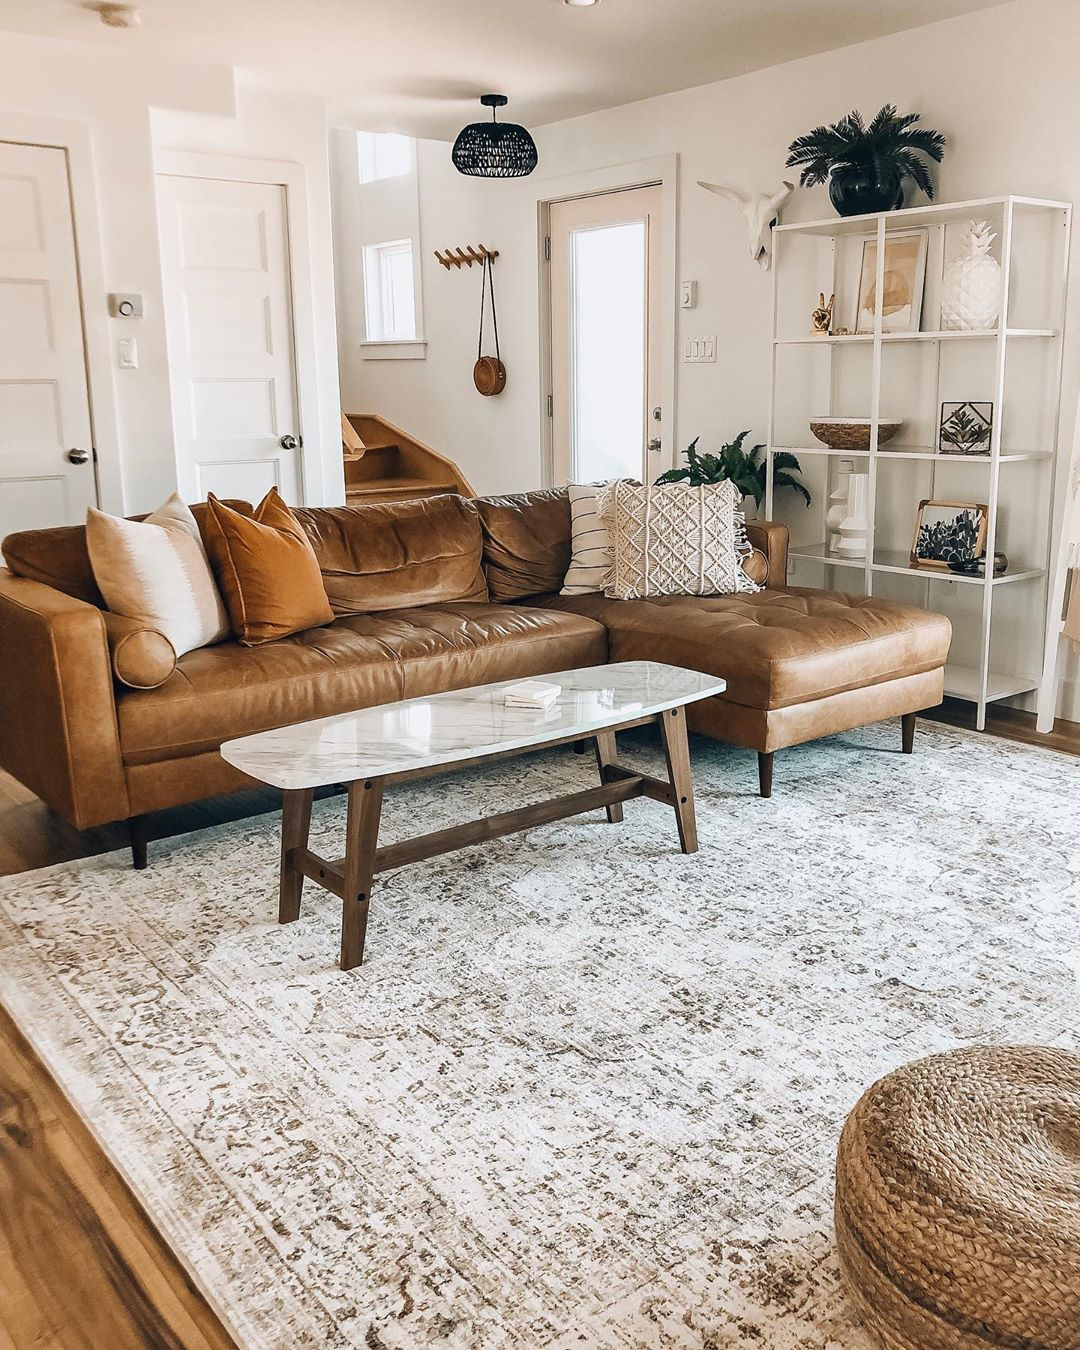 Loloi Rugs On Instagram The Revere Rug Playing Nicely With That Tan Sofa Well Done Boneil Leather Couches Living Room Tan Sofa Living Room Tan Living Room